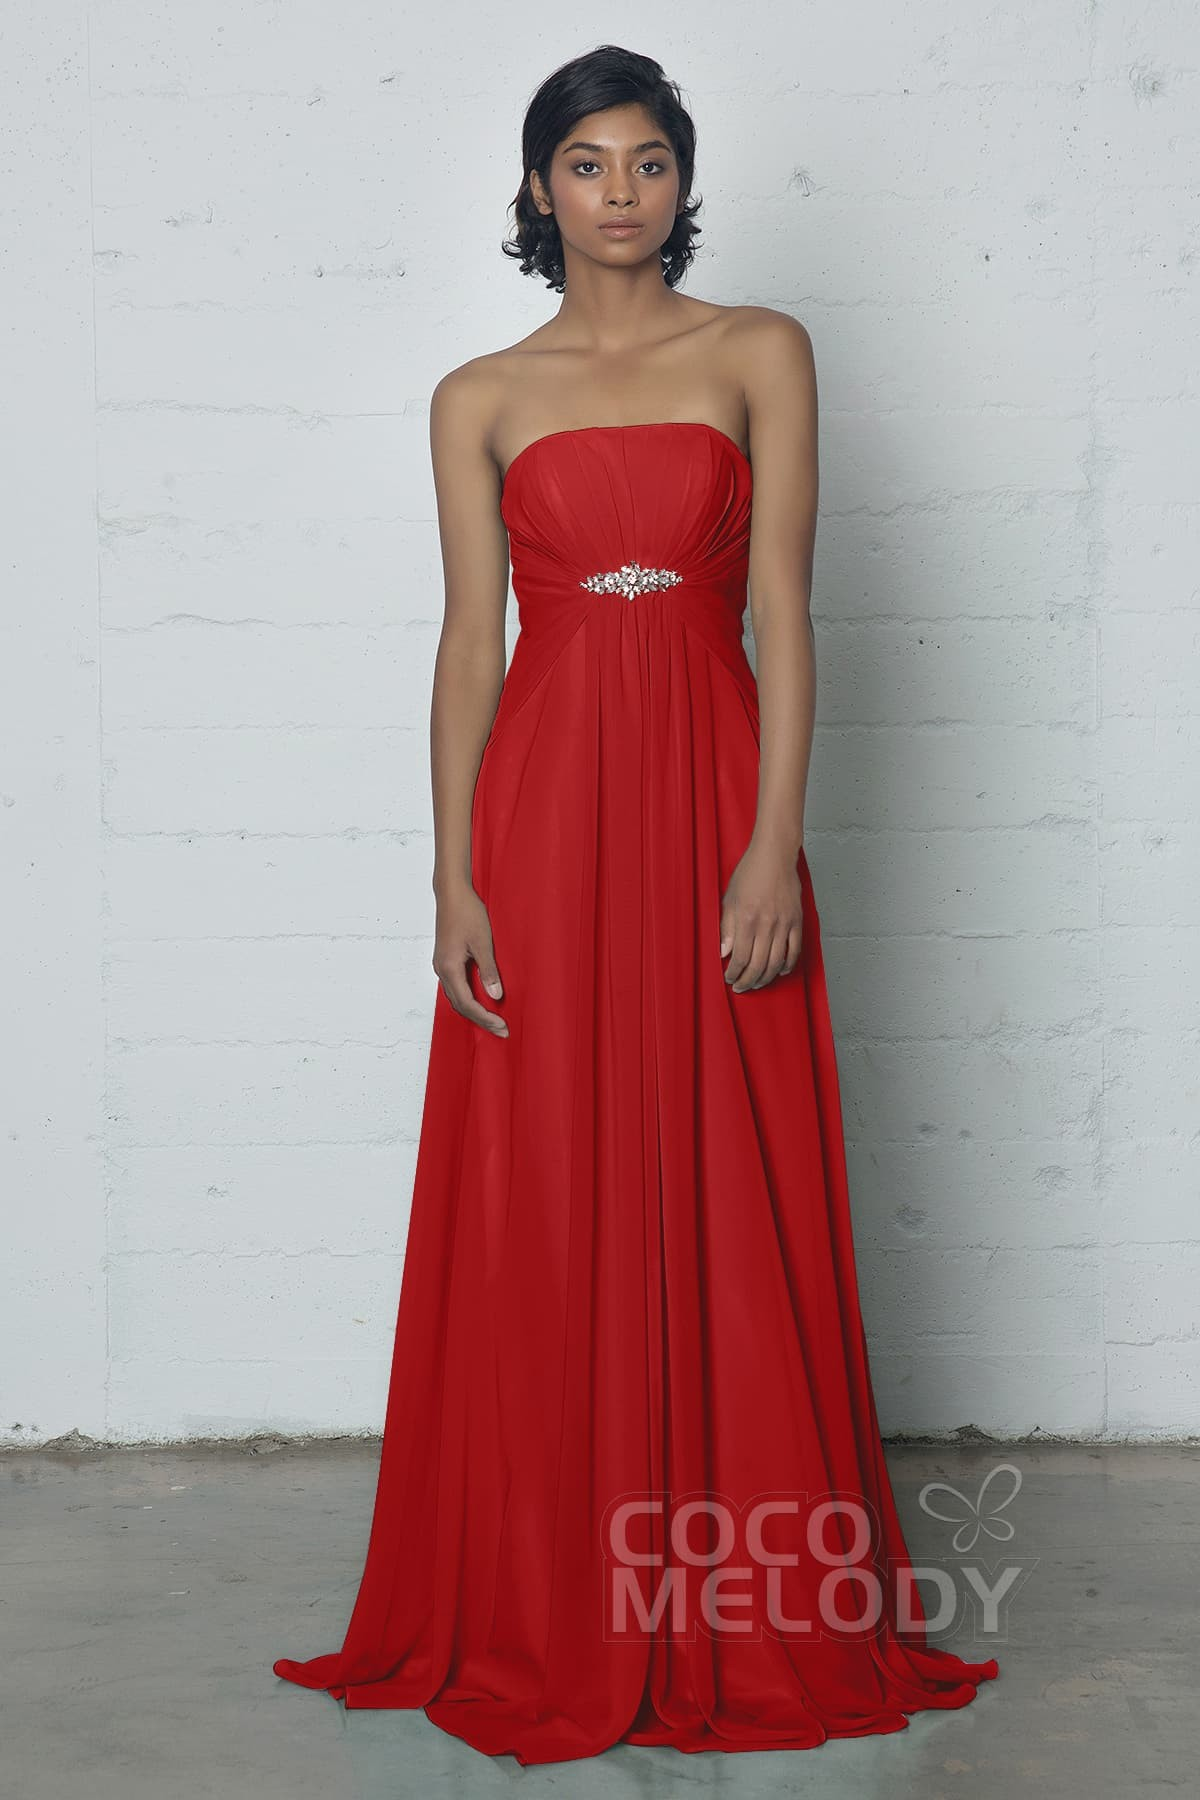 Empire waist red wedding dress